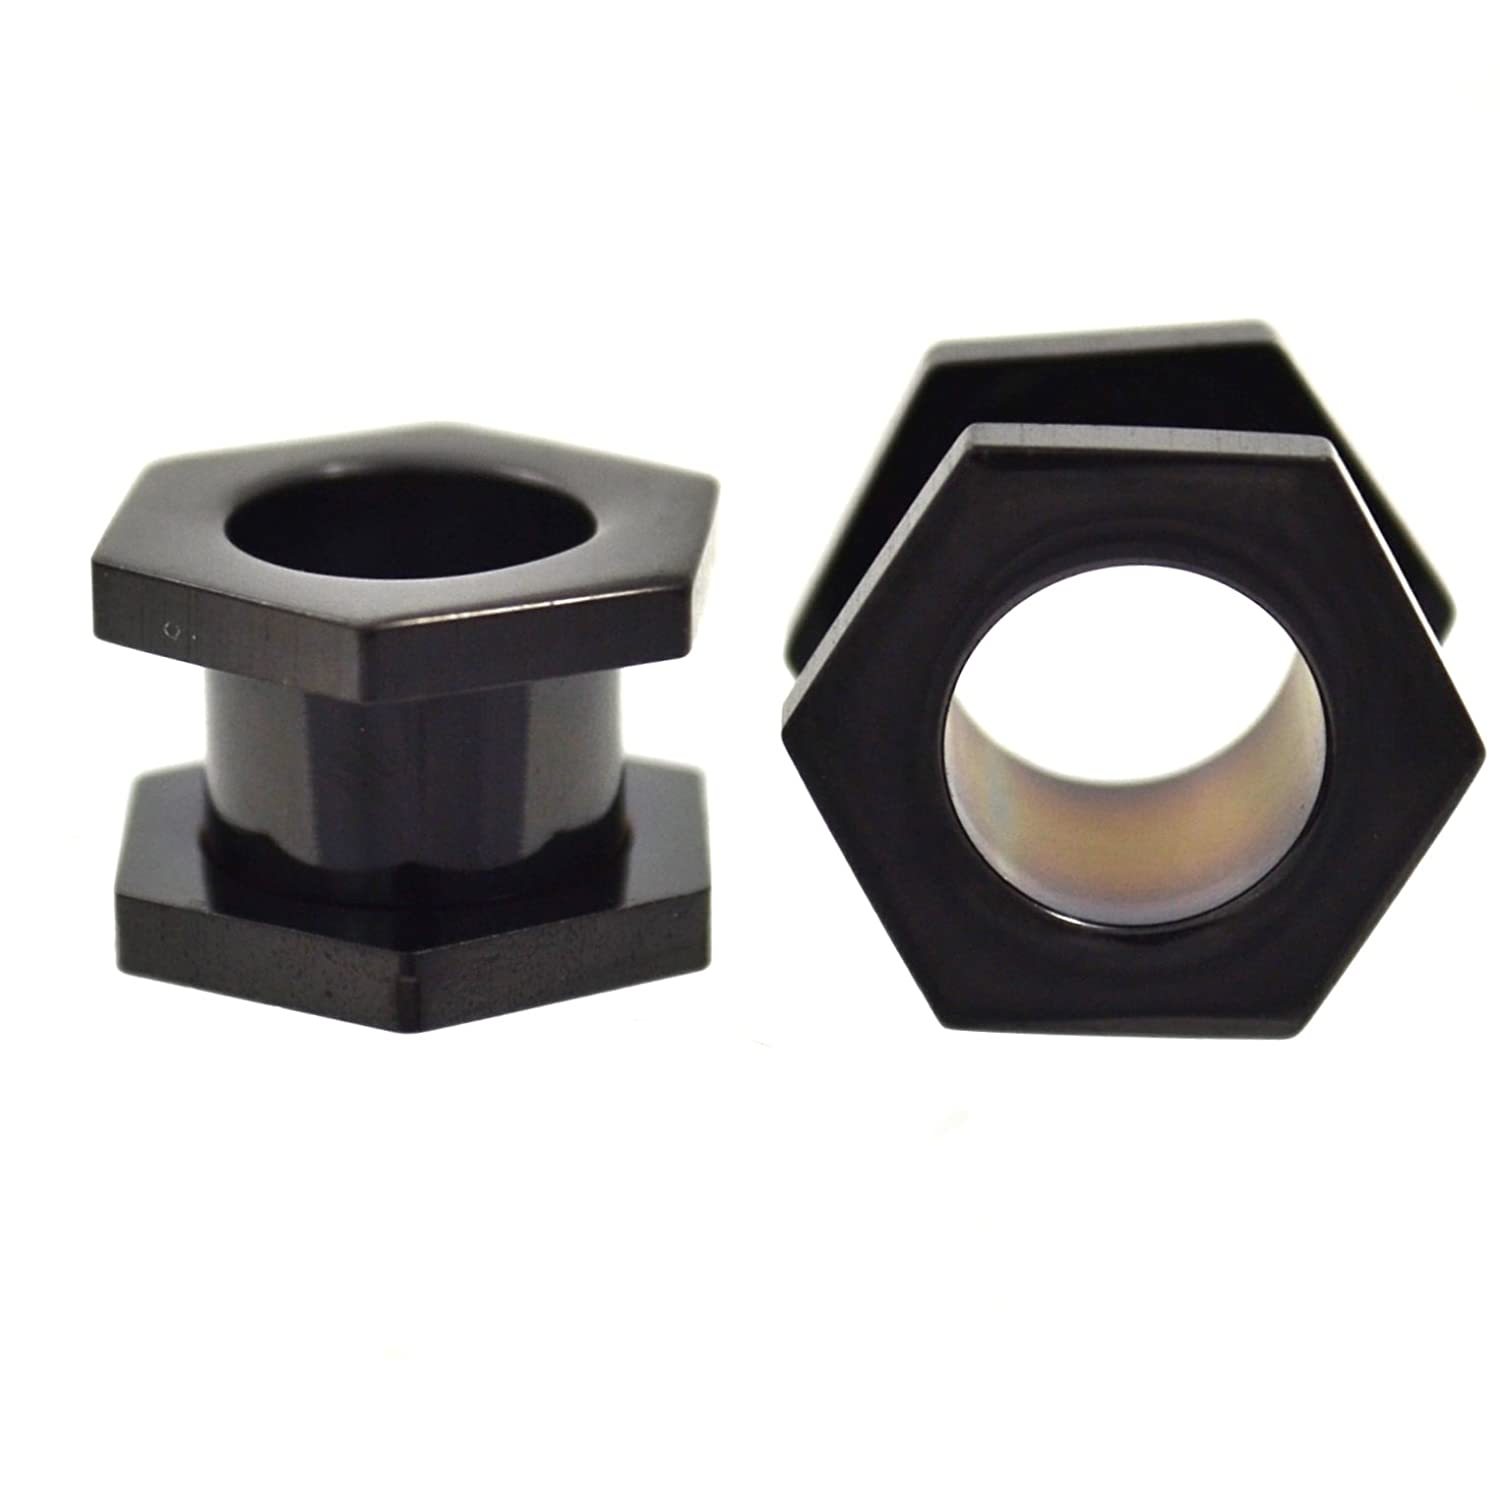 Pair of All Black Titanium Plated Hexagon Shaped End Ear Plugs Tunnels Screw Fit Gauges - 0G (8mm) UK_B00GU7WOCE